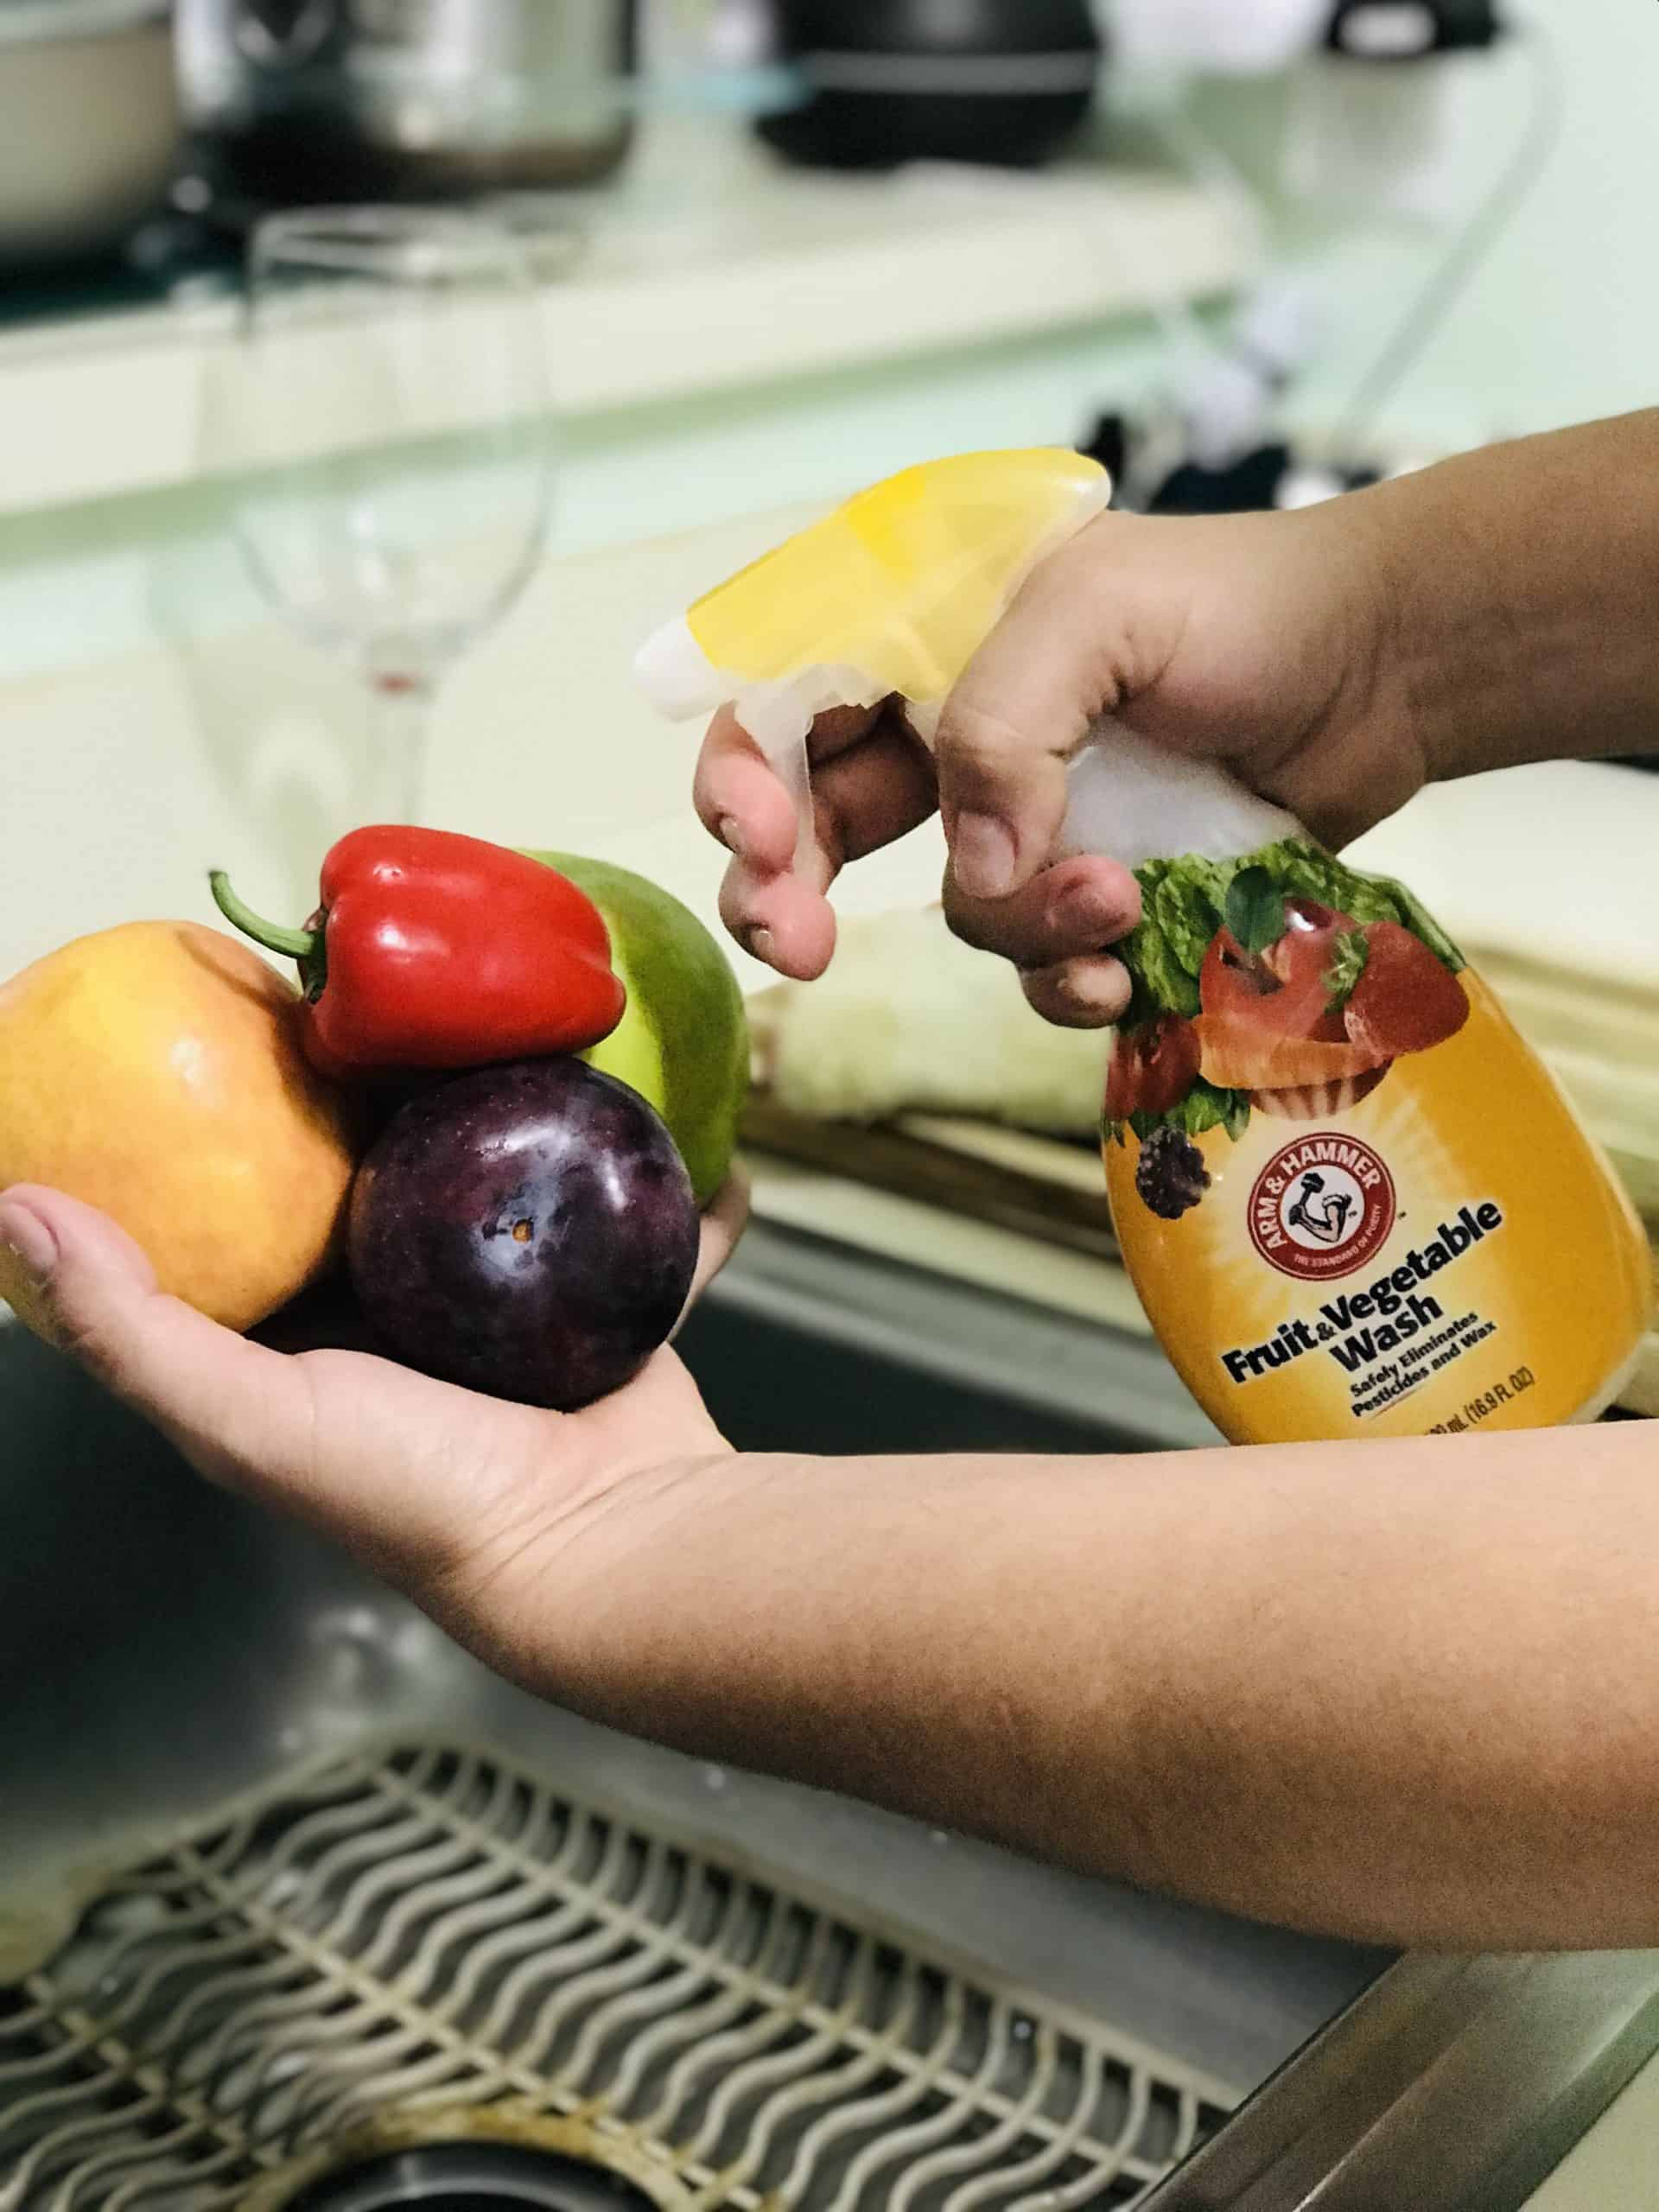 washing fruits with Fruit and Vegetable Wash